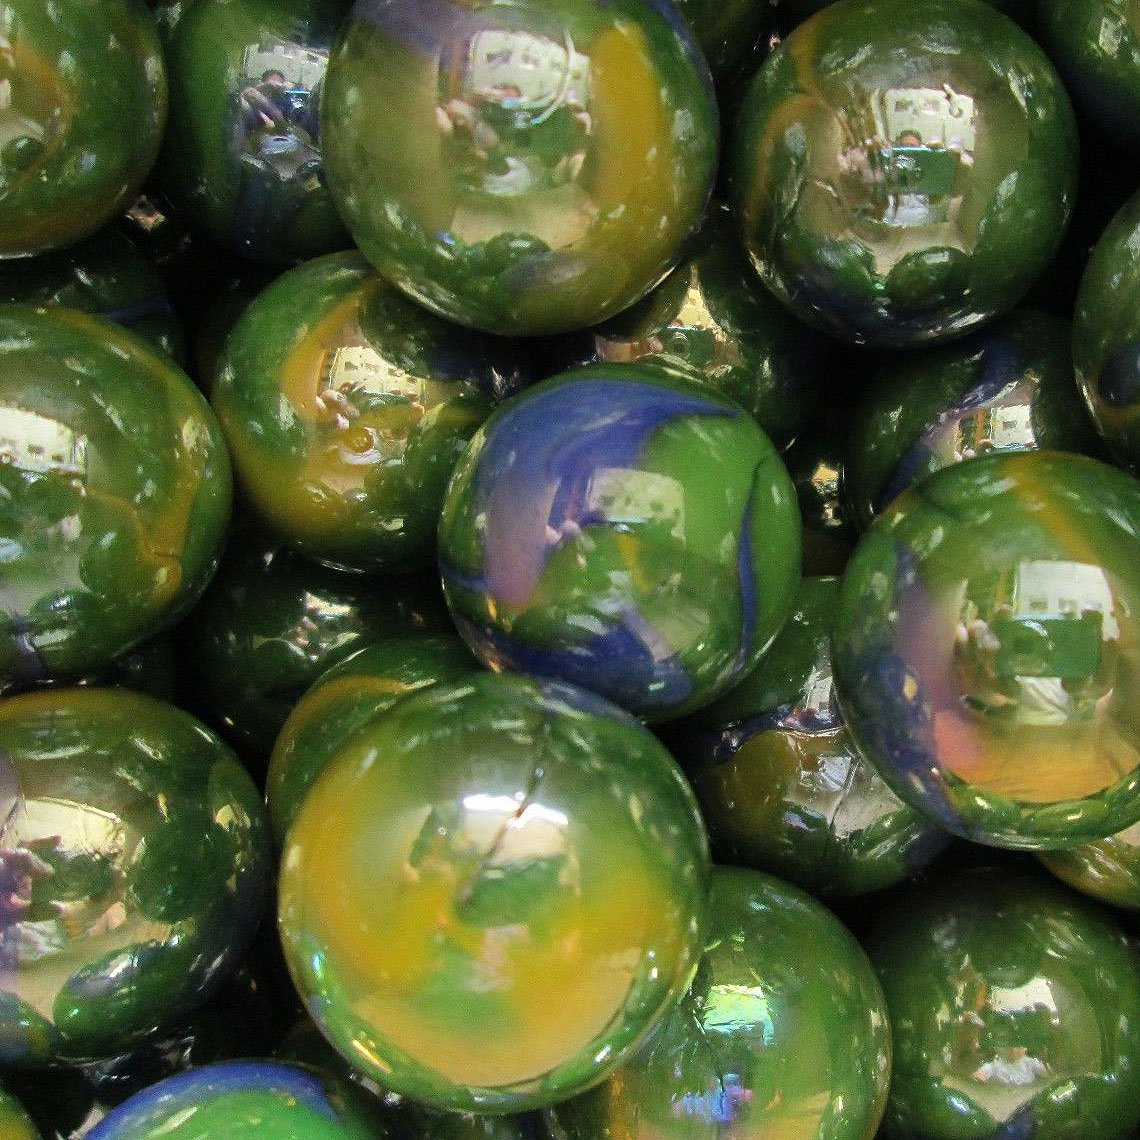 """Unique & Custom {1'' Inch} Approx 2 Pound Set of Big """"Round"""" Opaque Marbles Made of Glass for Filling Vases, Games & Decor w/ Shiny Planet Earth Tone Smooth Swirl Design [Green, Blue & Yellow Colors]"""